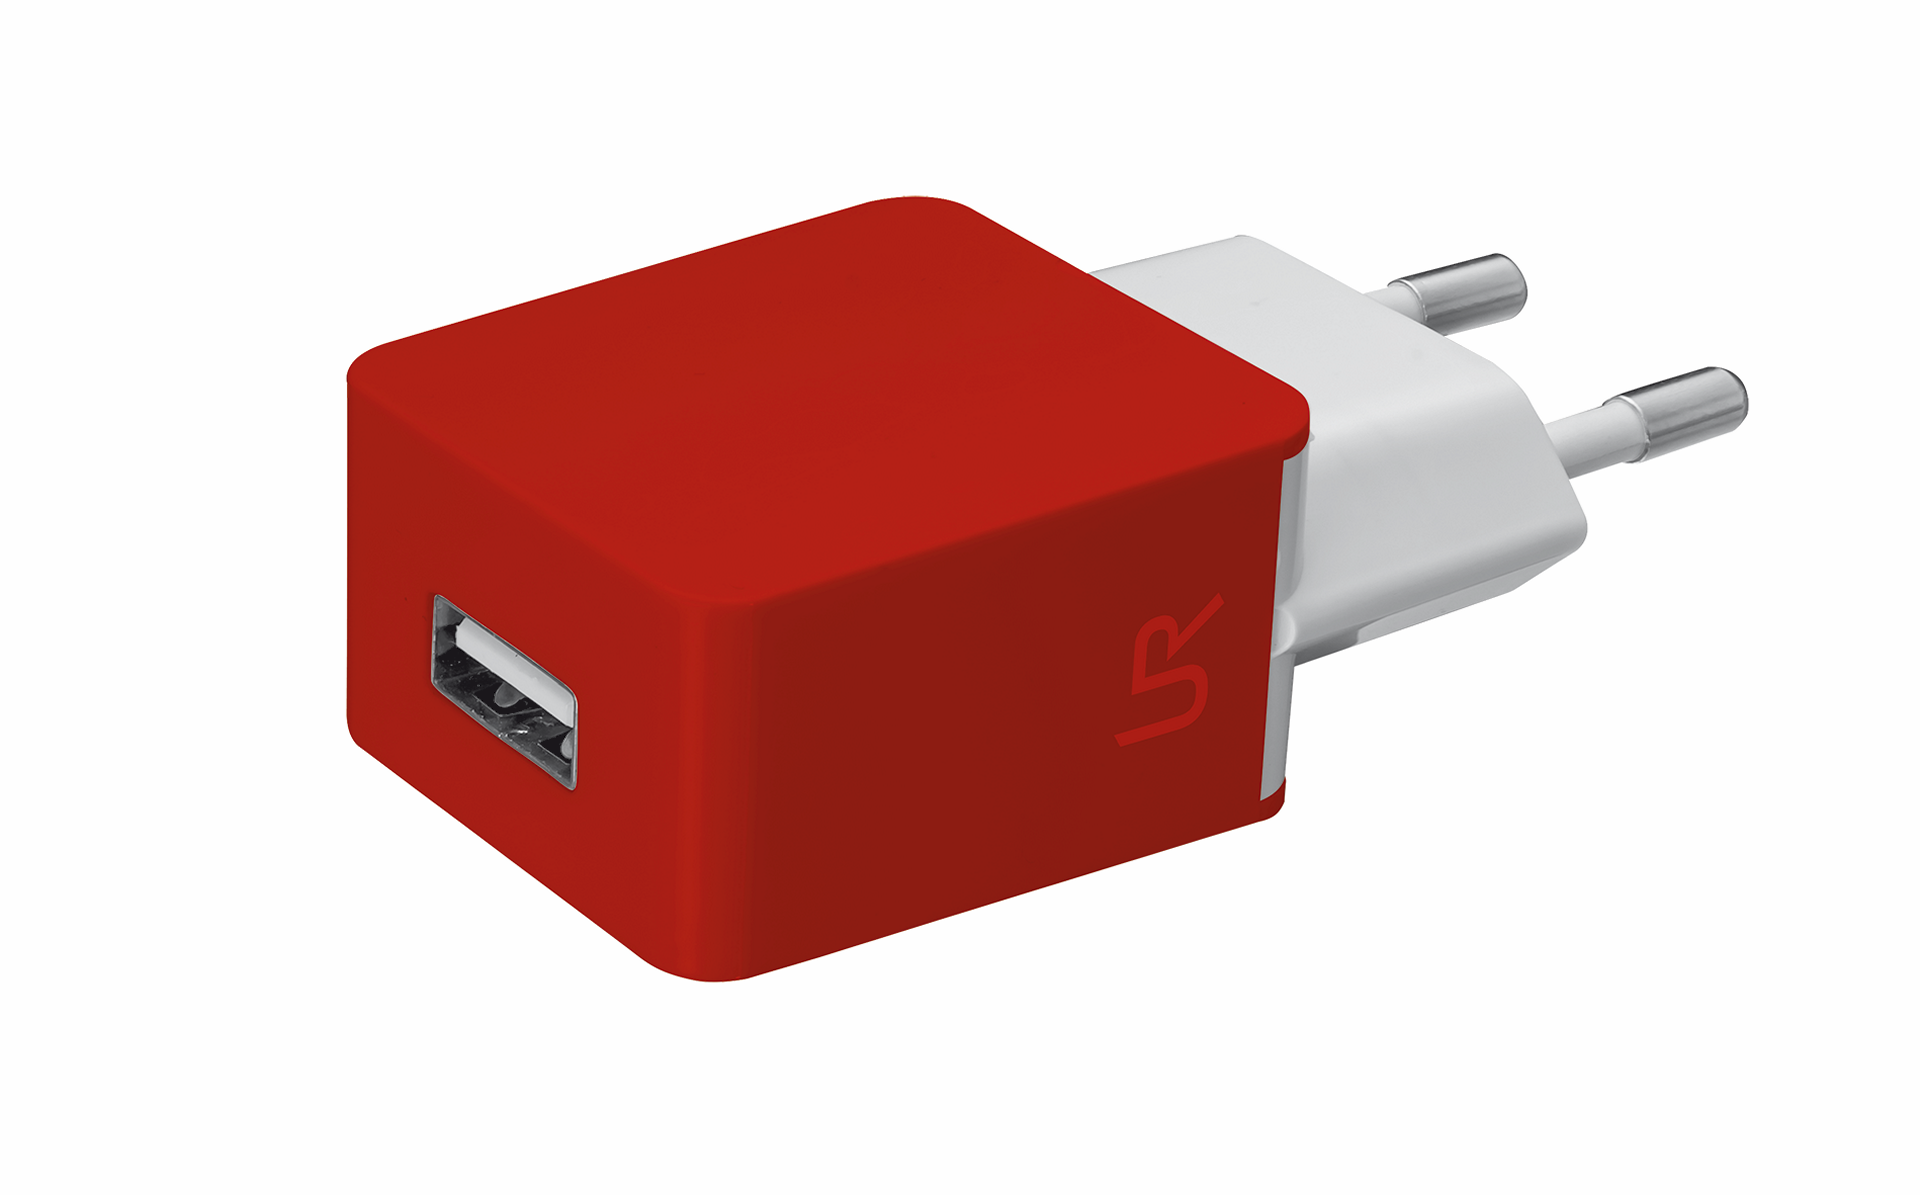 Universal Smartphone Charger - Home - red